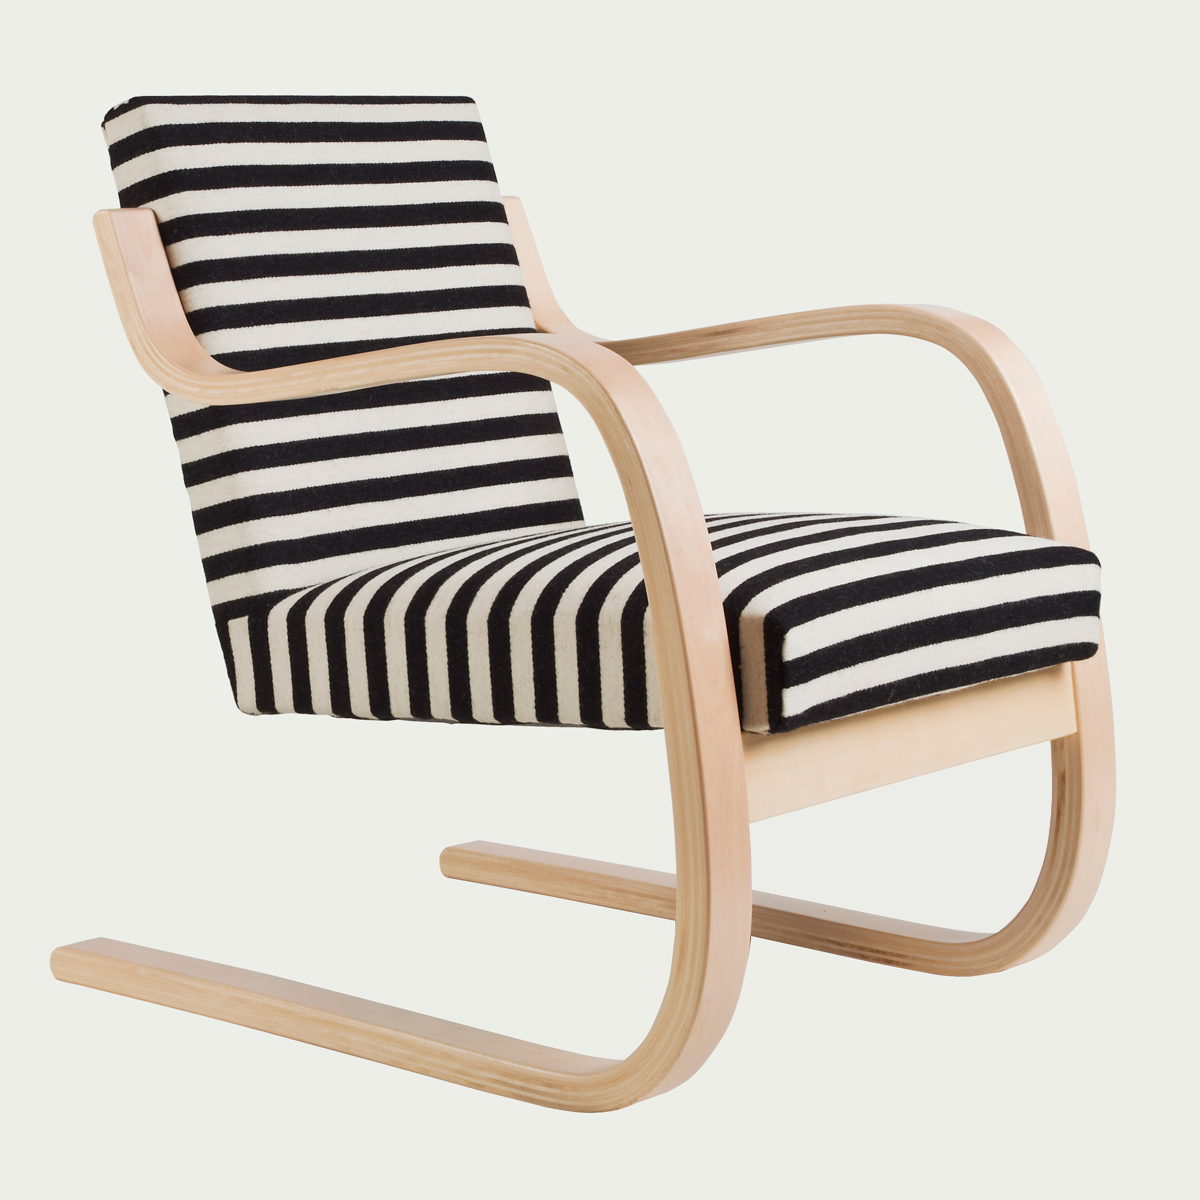 Swell Artek Alvar Aalto Lounge Chair 402 Your Own Materials Pabps2019 Chair Design Images Pabps2019Com